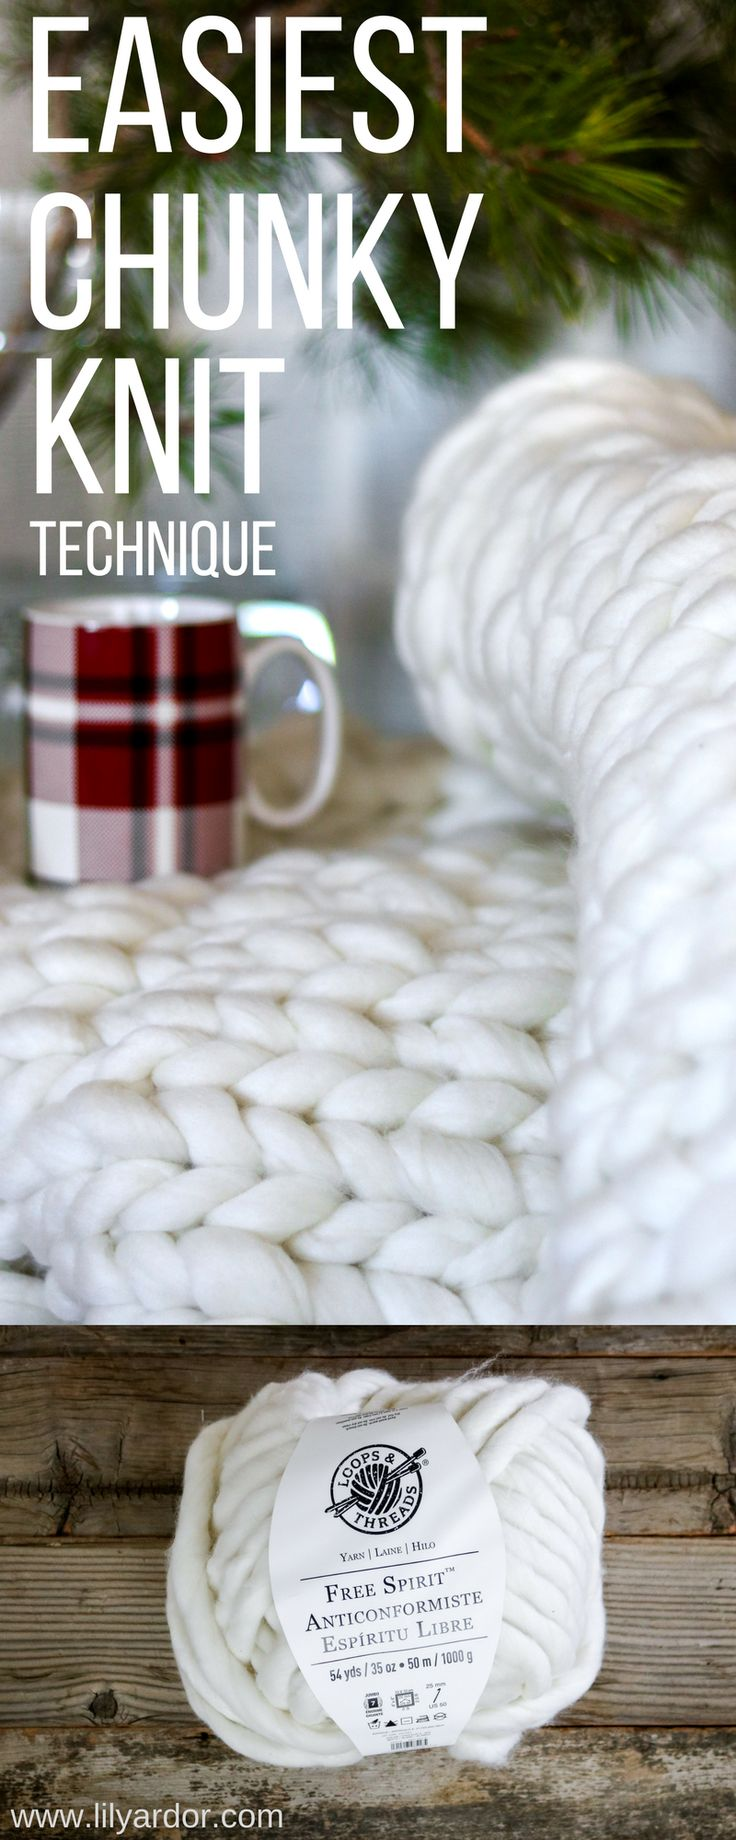 No knitting needles or experienced needed to make your own chunky knit blanket!!